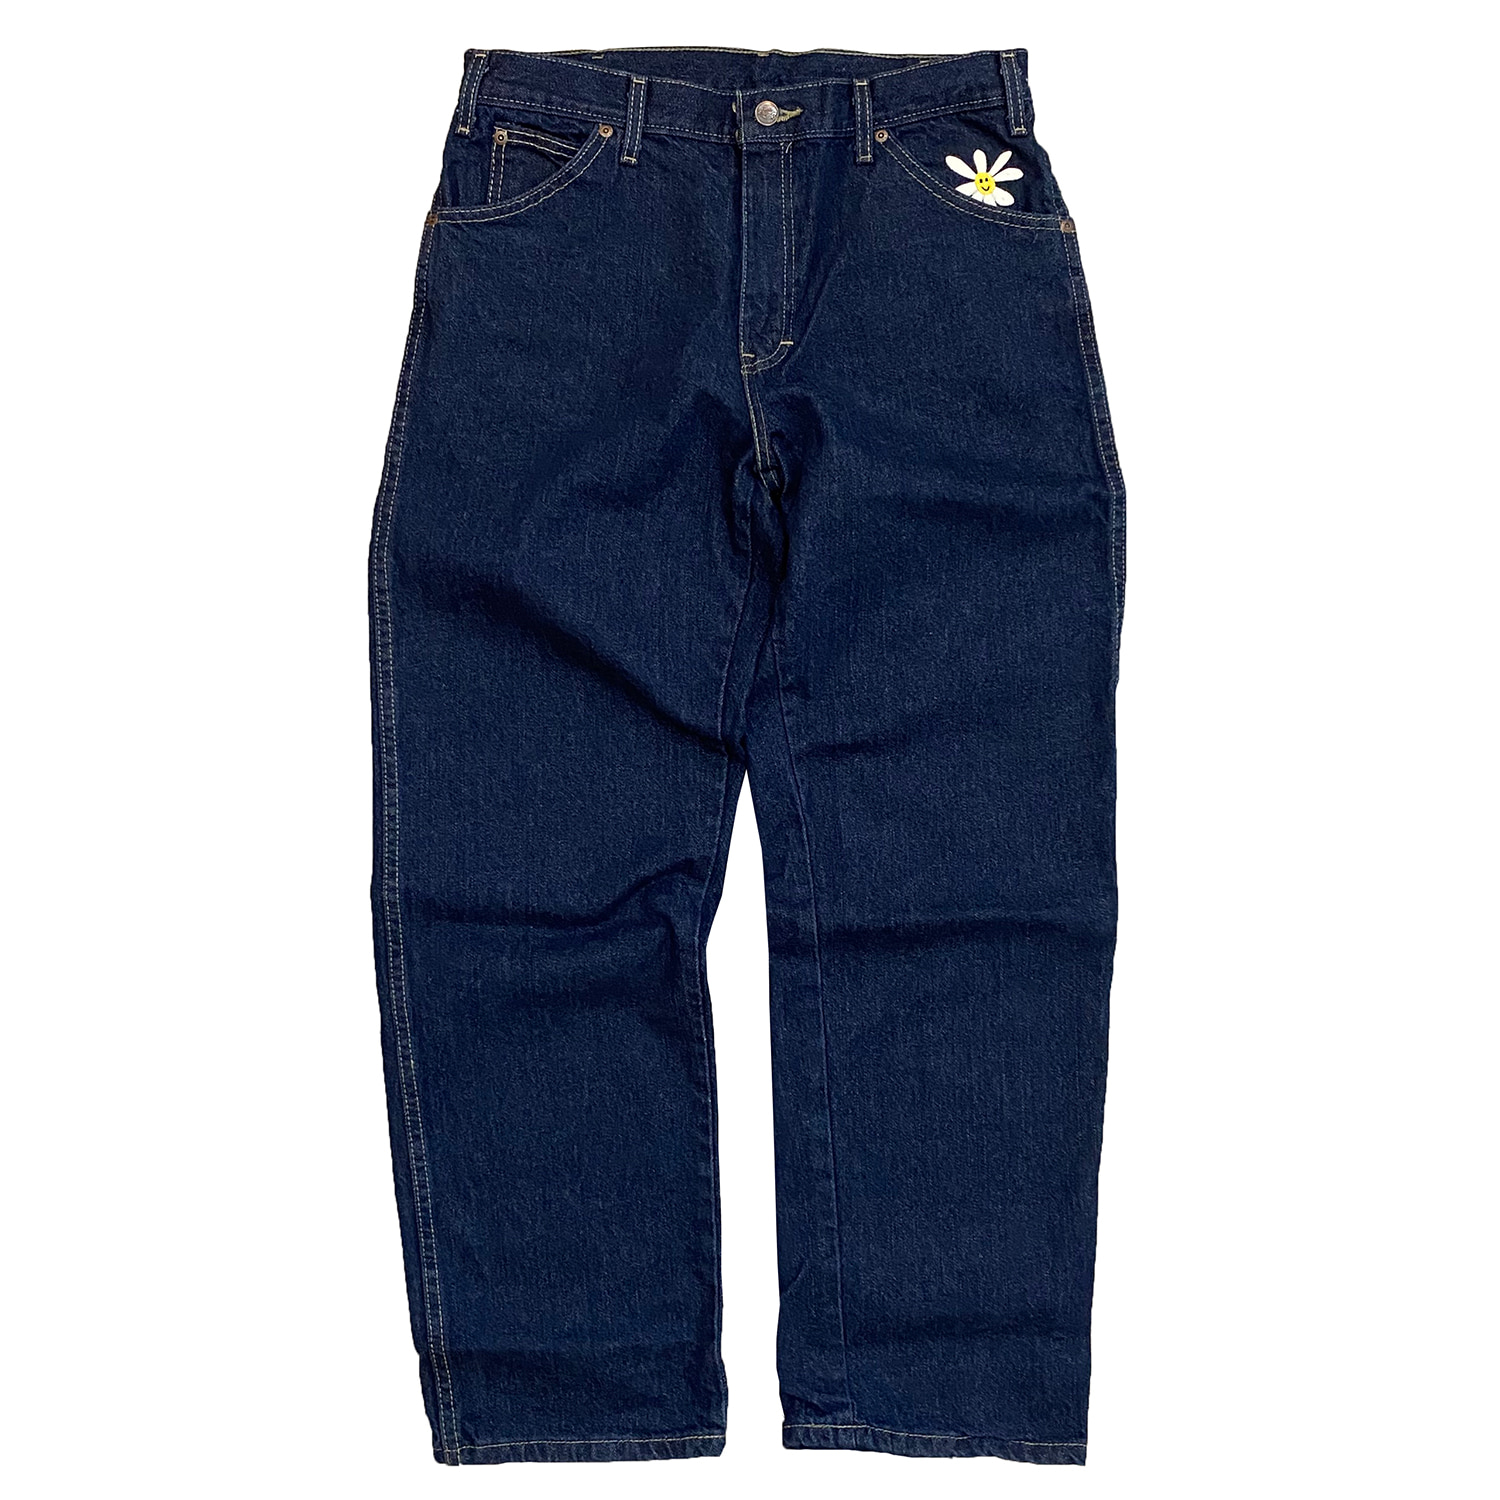 Daisy Dickies Relaxed Straight Jeans (Rinsed Indigo Blue)